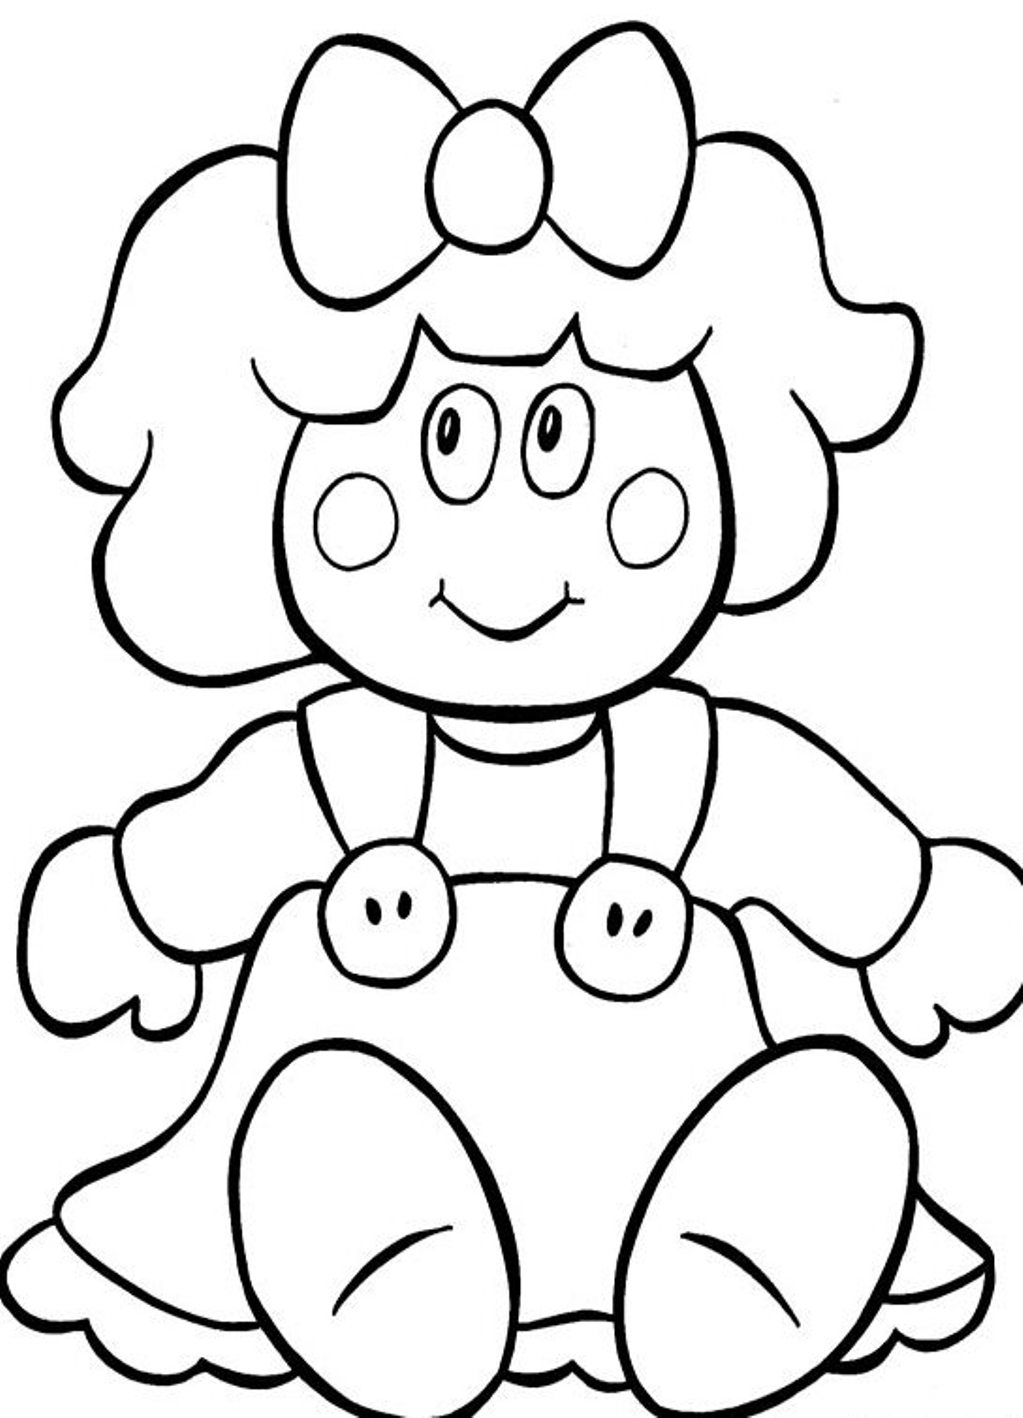 toddler printable coloring pages free printable teletubbies coloring pages for kids printable pages toddler coloring